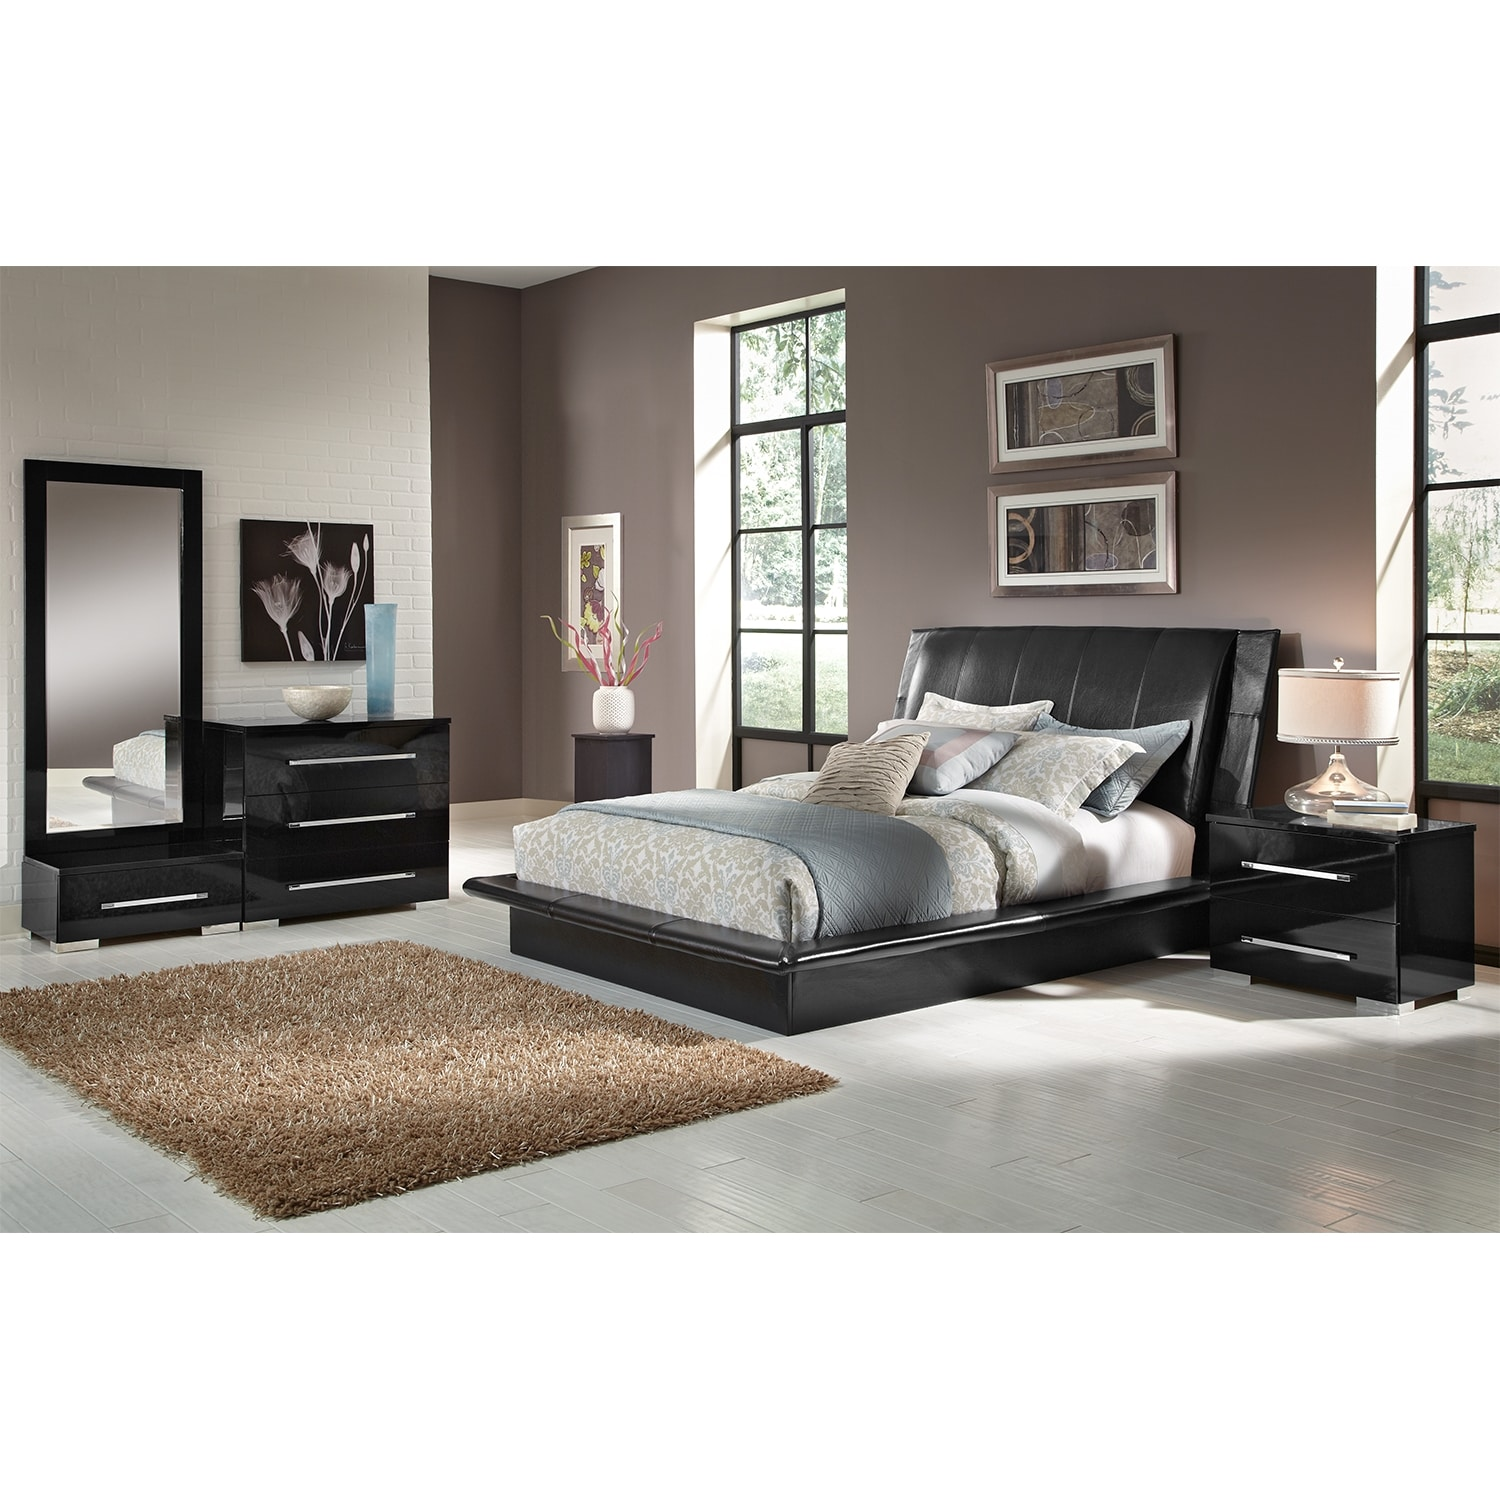 Dimora 6 piece queen upholstered bedroom set black - Black queen bedroom furniture set ...